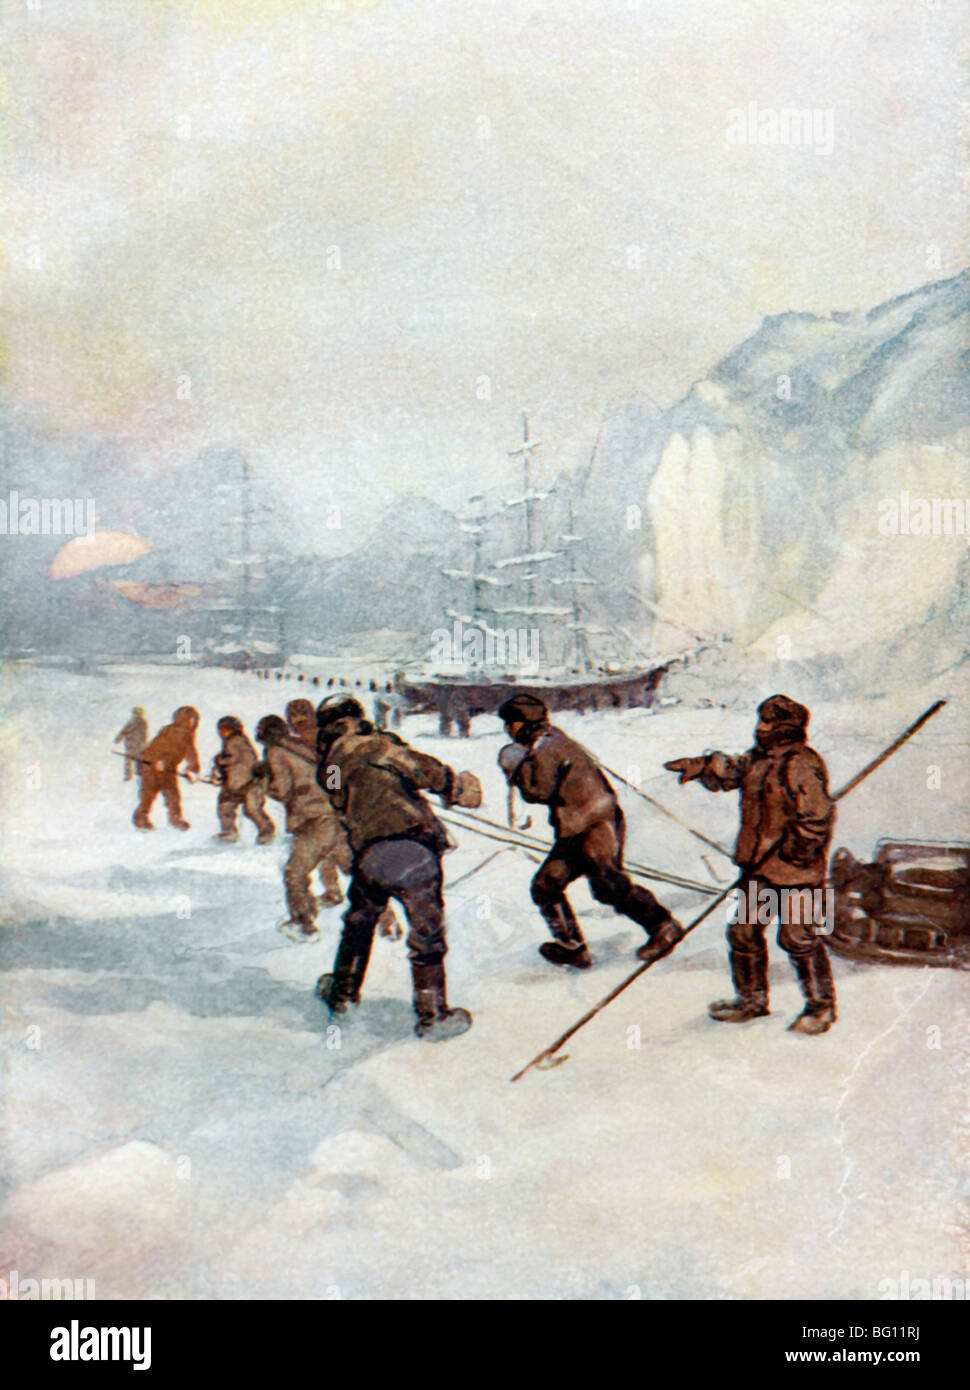 Illustration Of Sir John Franklin And His Men Walking On The Ice With Sledges - Stock Image